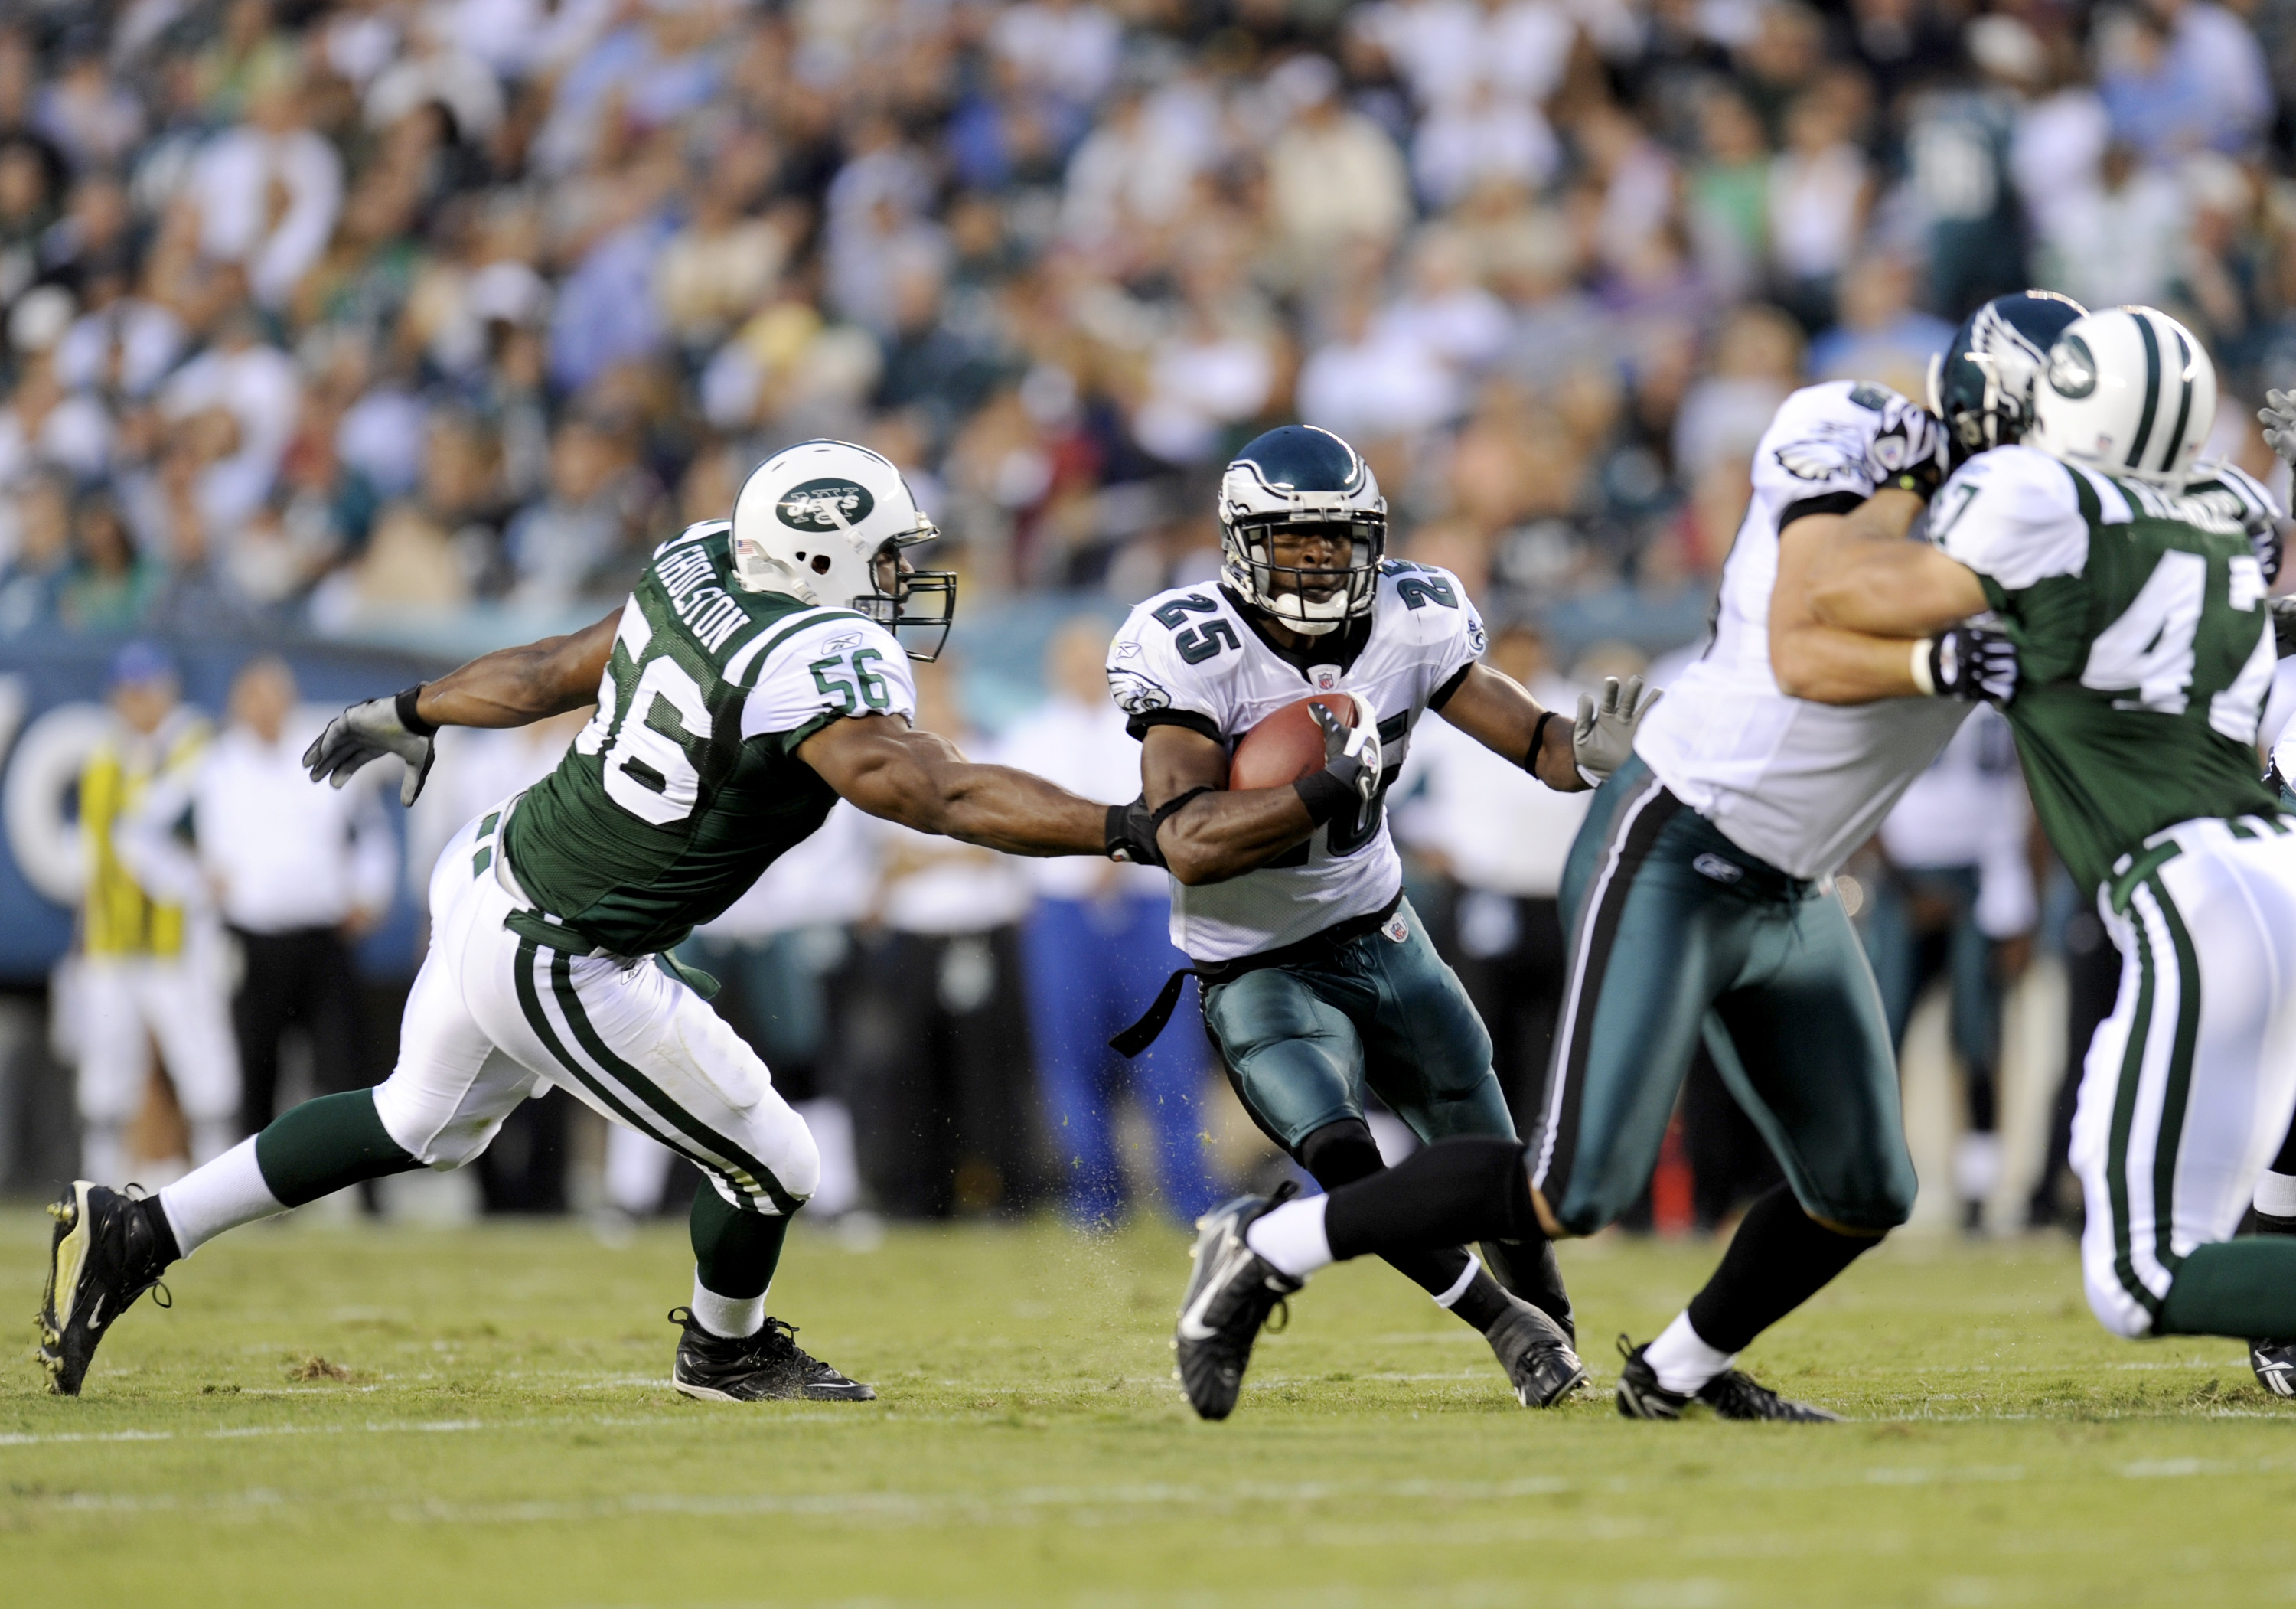 PHILADELPHIA - AUGUST 28: Lorenzo Booker #25 of the Philadelphia Eagles rushes as Vernon Gholston #56 of the New York Jets tries to make a tackle during a preseason game at Lincoln Financial Field on August 28, 2008 in Philadelphia, Pennsylvania. (Photo b